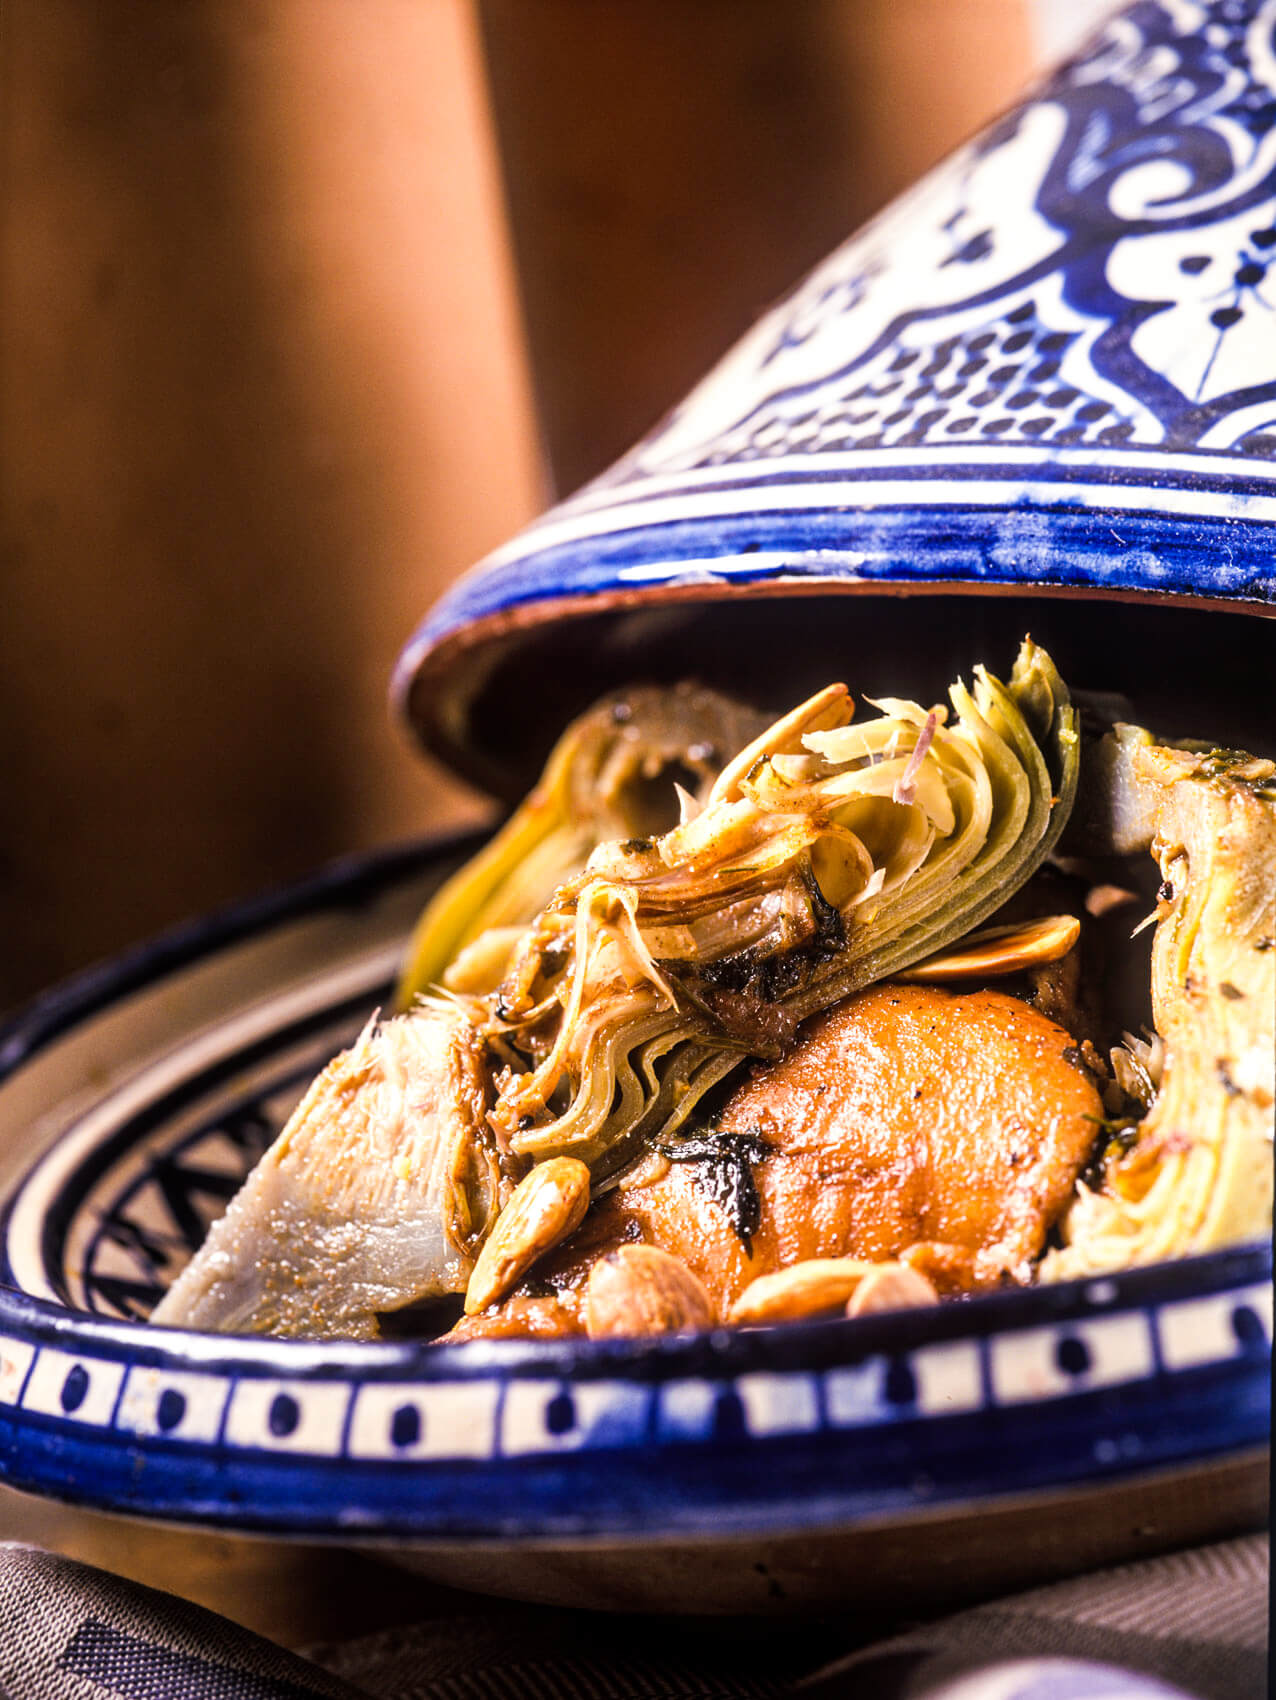 An open tagine filled with shredded artichokes, chicken and other ingredients.